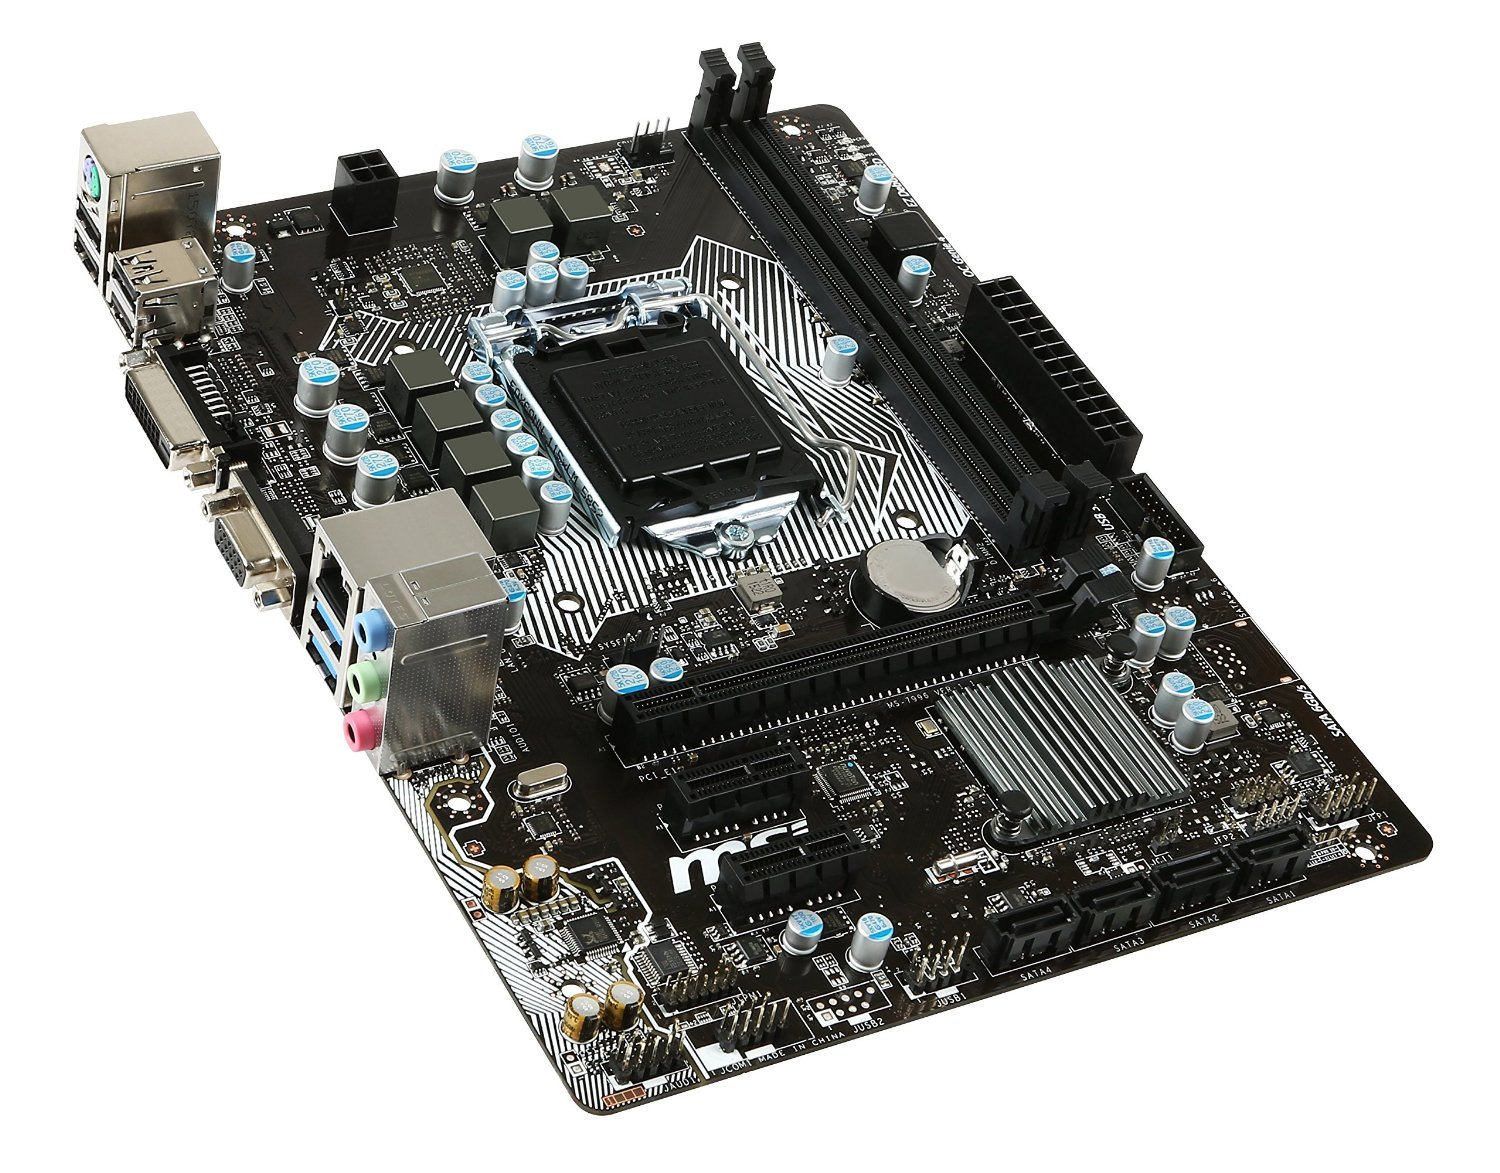 Atx Motherboard Diagram Labeled With This Motherboard Is